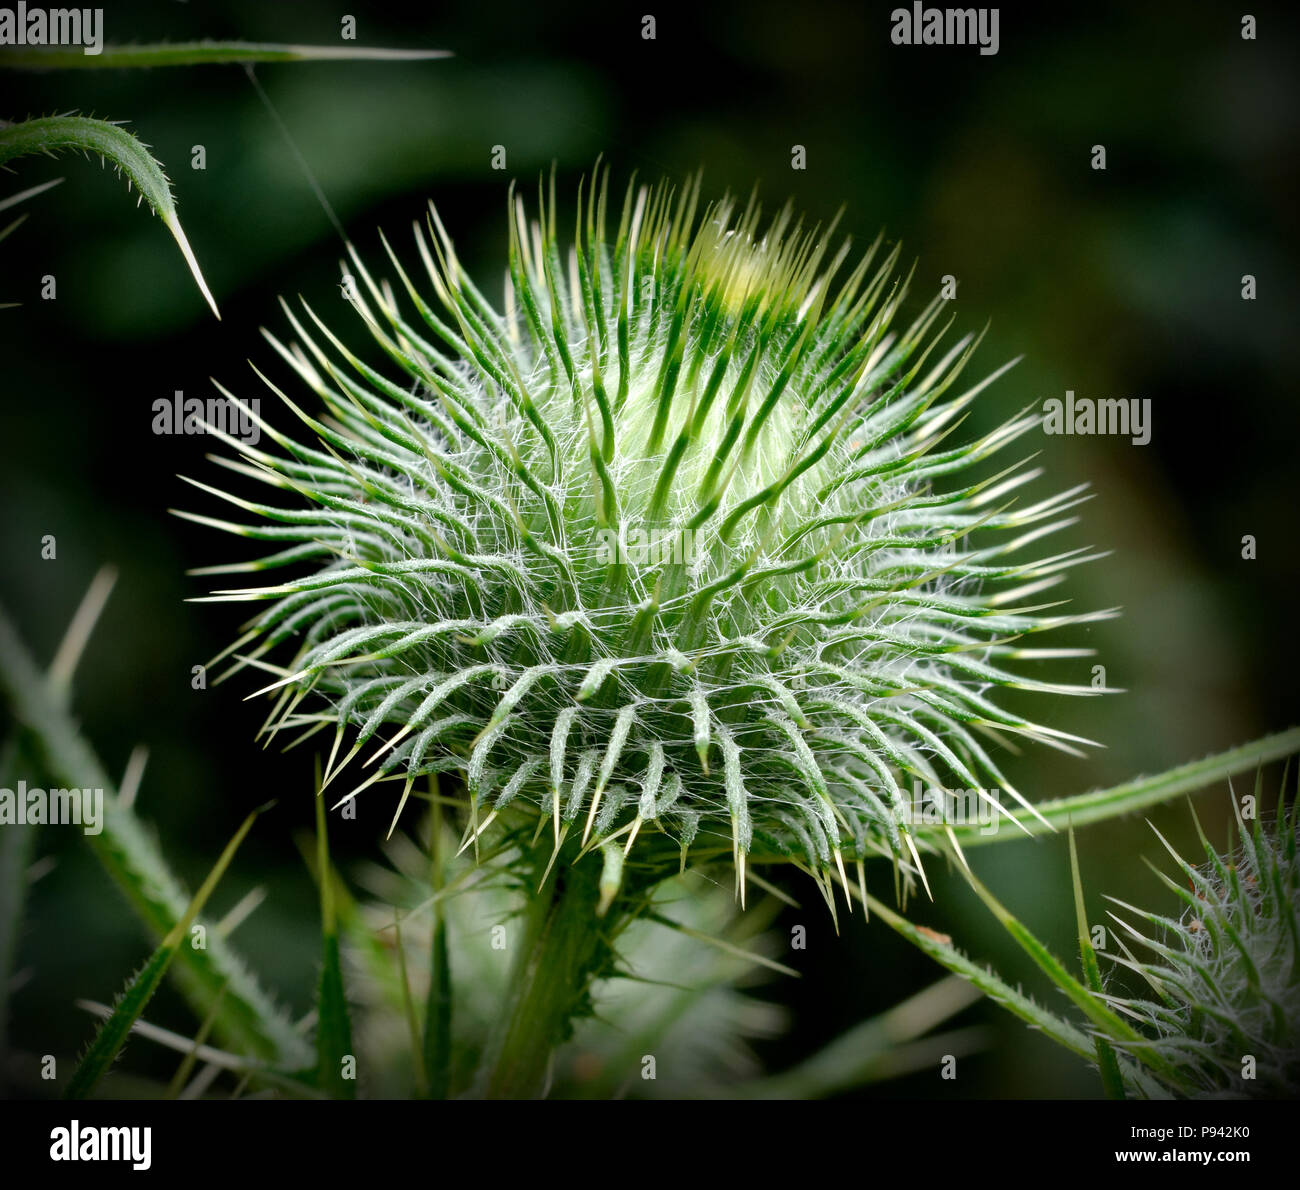 Cirsium vulgare, spear thistle in a park - Stock Image